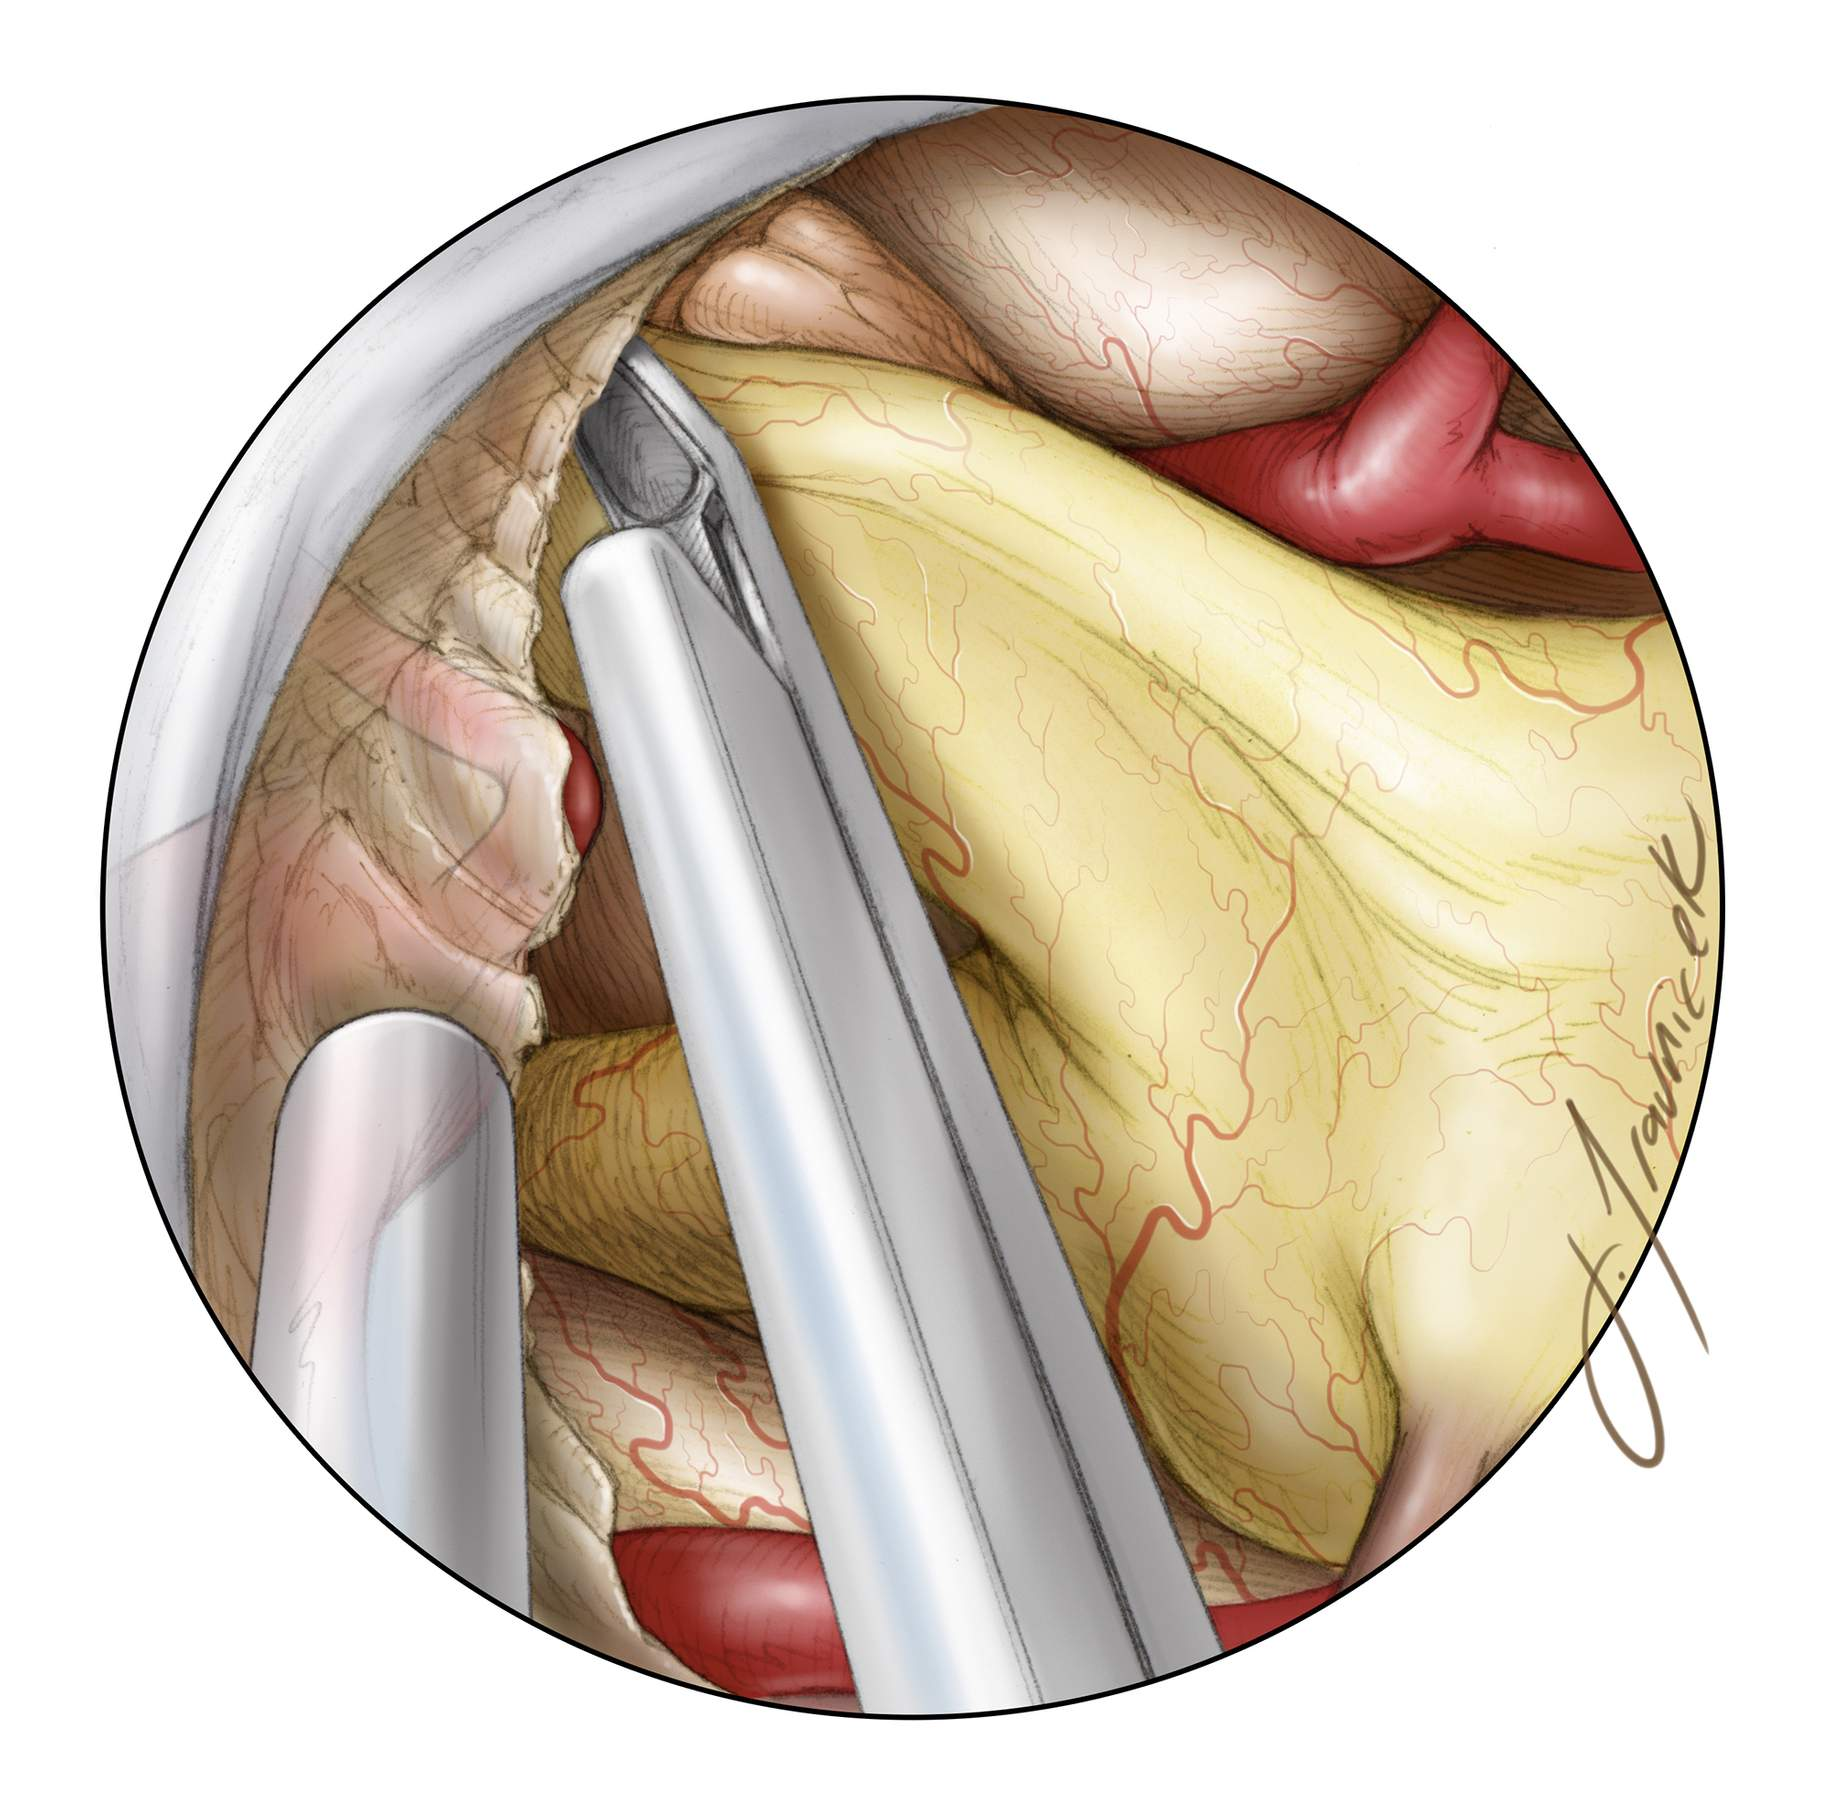 Figure 12: Next, the optic canals should be inspected using an angled scope. If radiographic canal involvement was seen preoperatively, the medial wall of the optic canal has already been removed. If unexpected intraoperative invasion is found, the floor of the canal can be opened at this point with fine rongeurs and/or a high-speed drill.